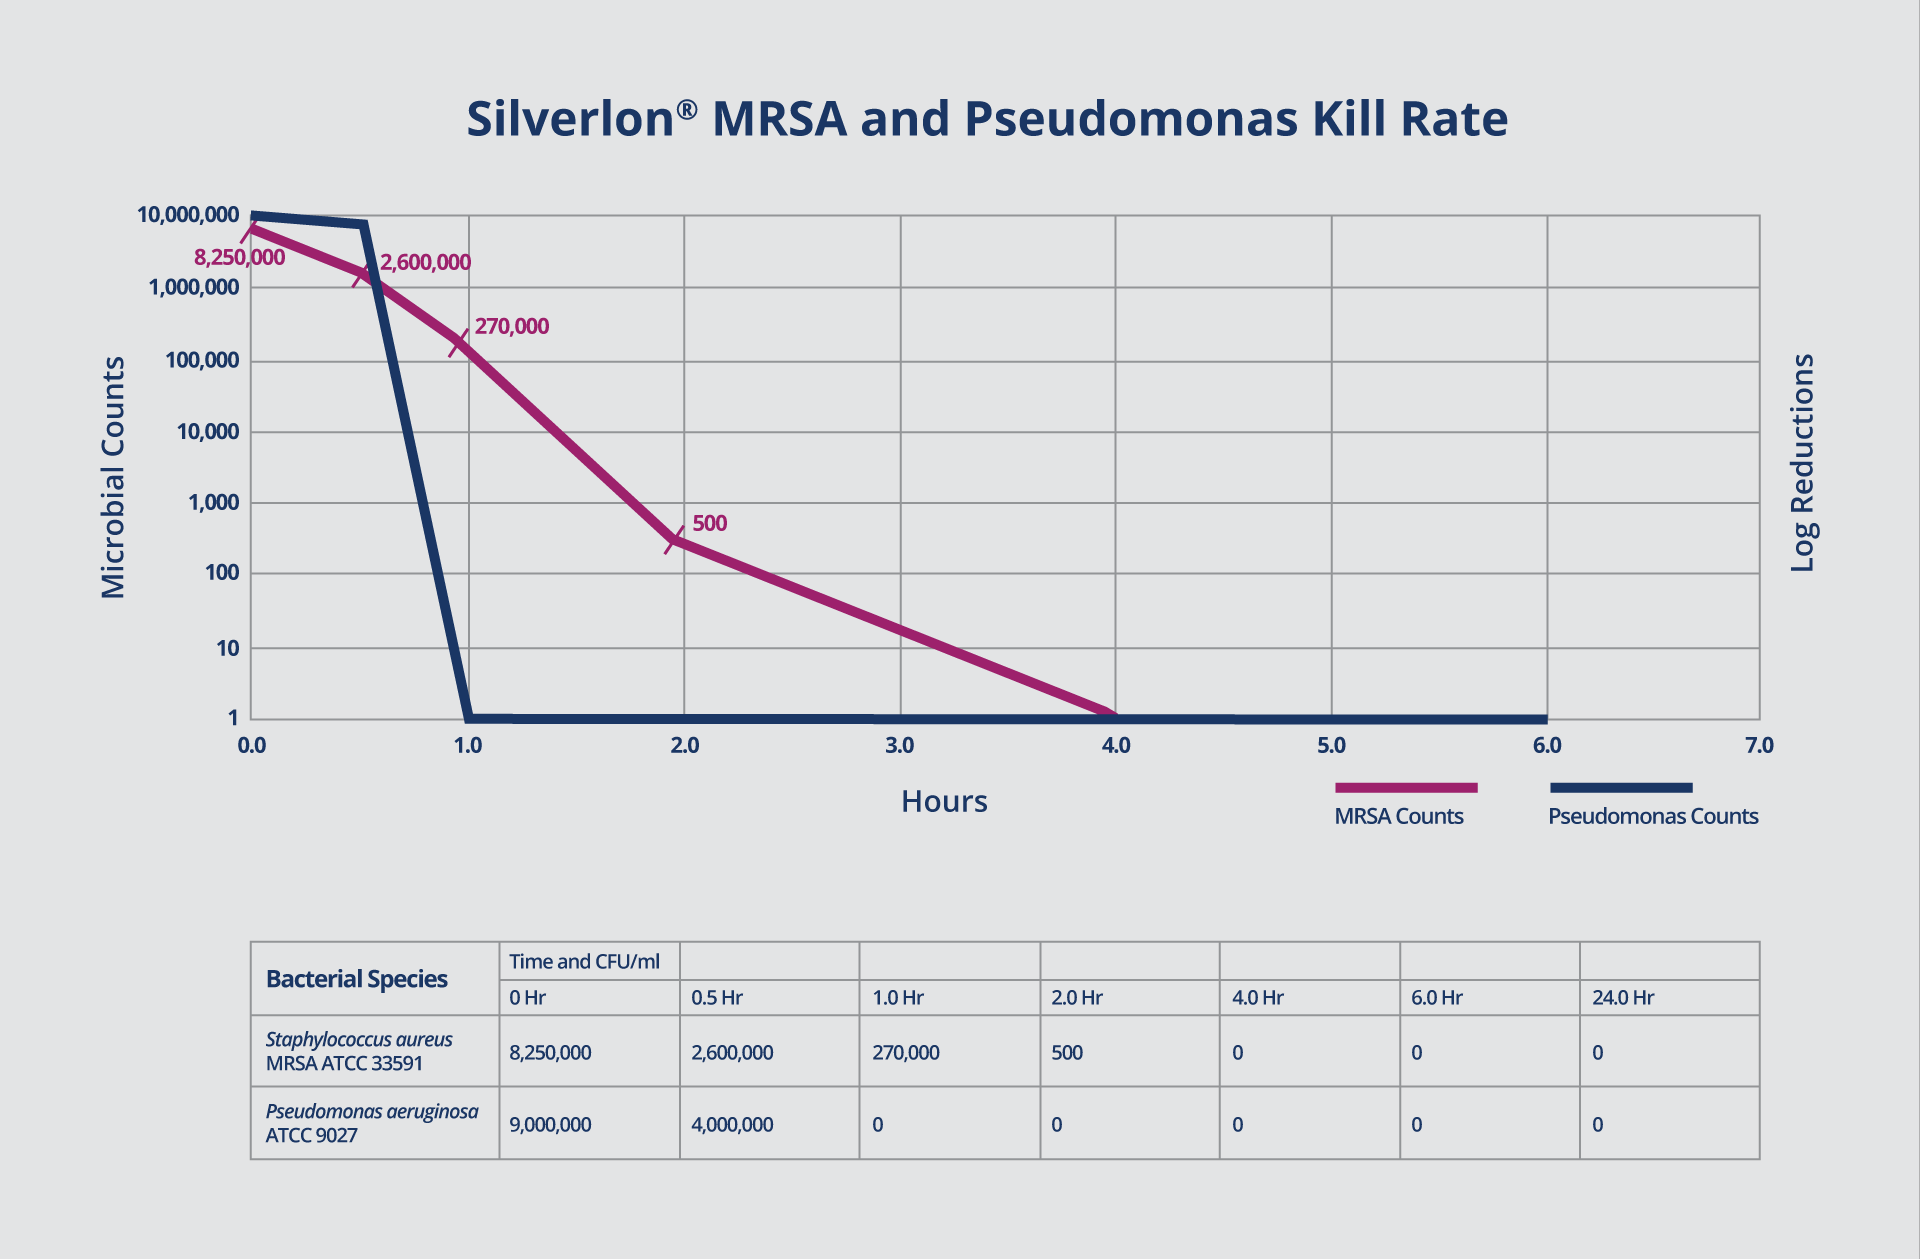 Silverlon MRSA and Pseudomonas Kill Rate Chart